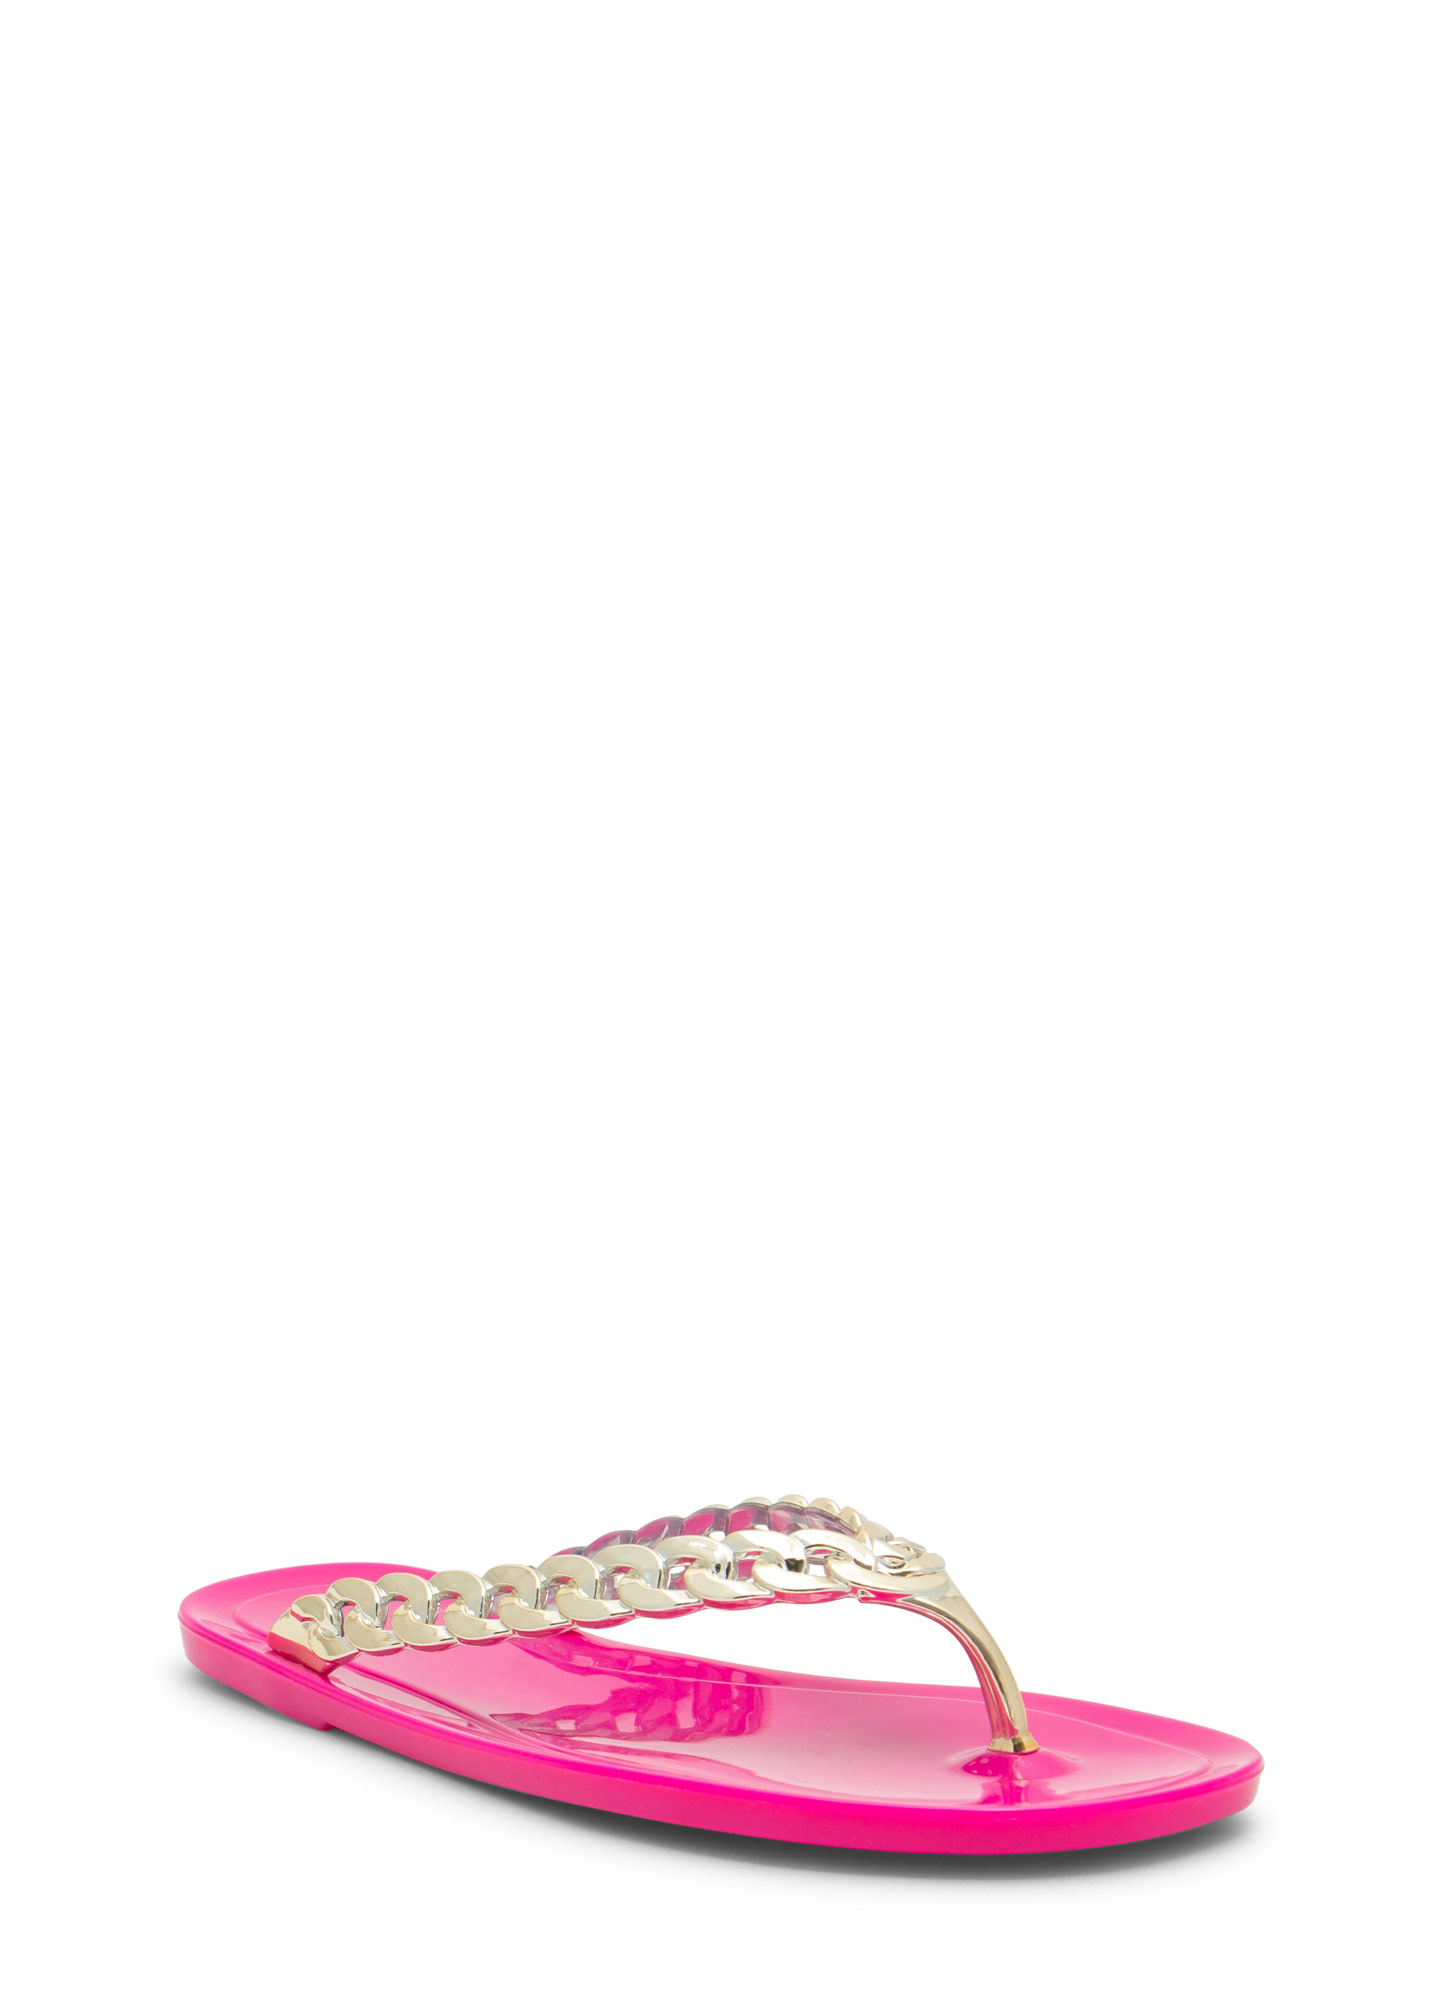 Missing Link Jelly Thong Sandals MAGENTA